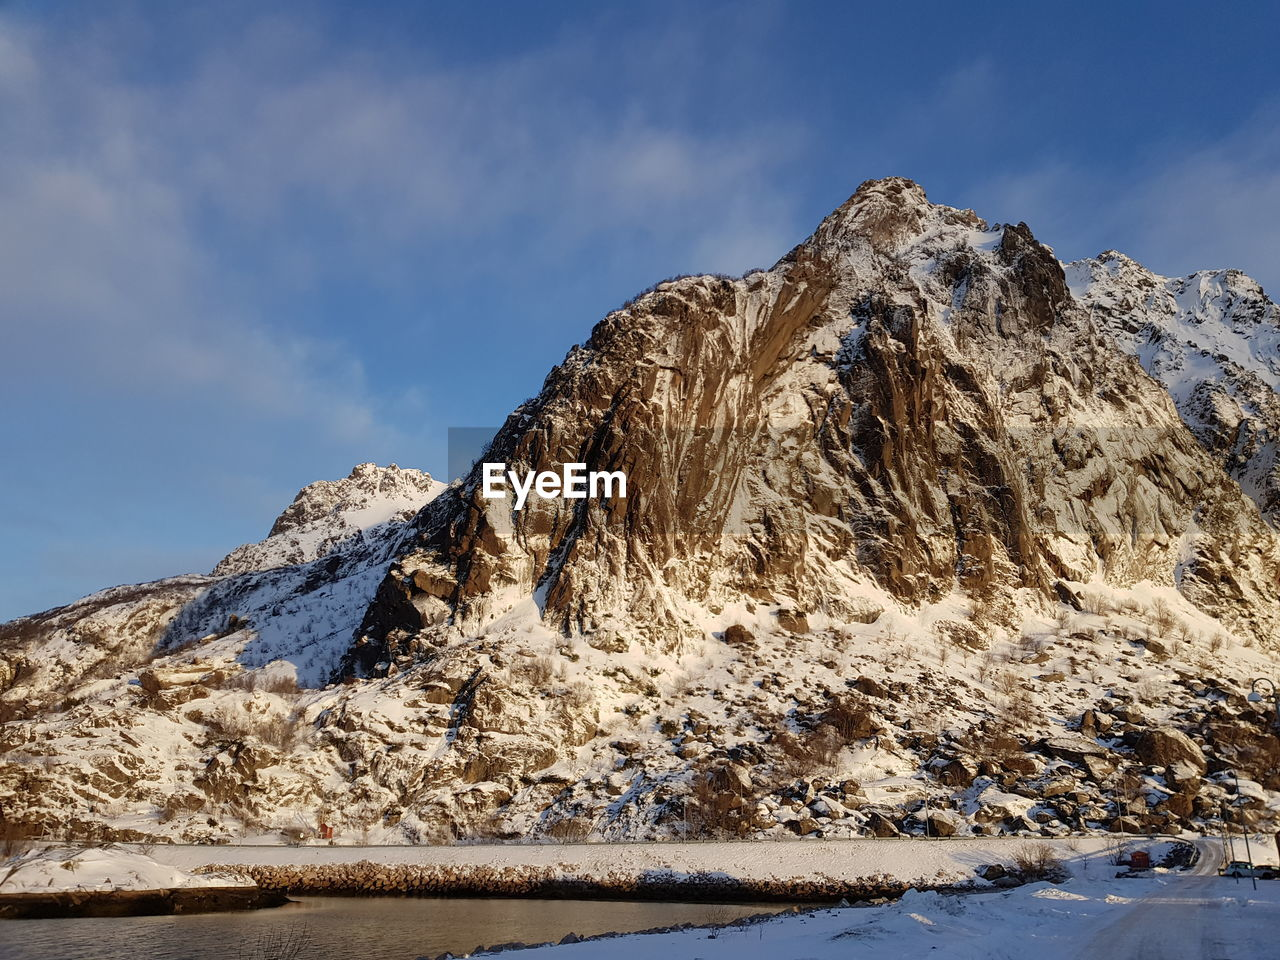 cold temperature, winter, snow, mountain, sky, beauty in nature, scenics - nature, tranquil scene, snowcapped mountain, mountain range, tranquility, cloud - sky, nature, no people, non-urban scene, rock, day, environment, landscape, formation, outdoors, ice, mountain peak, extreme weather